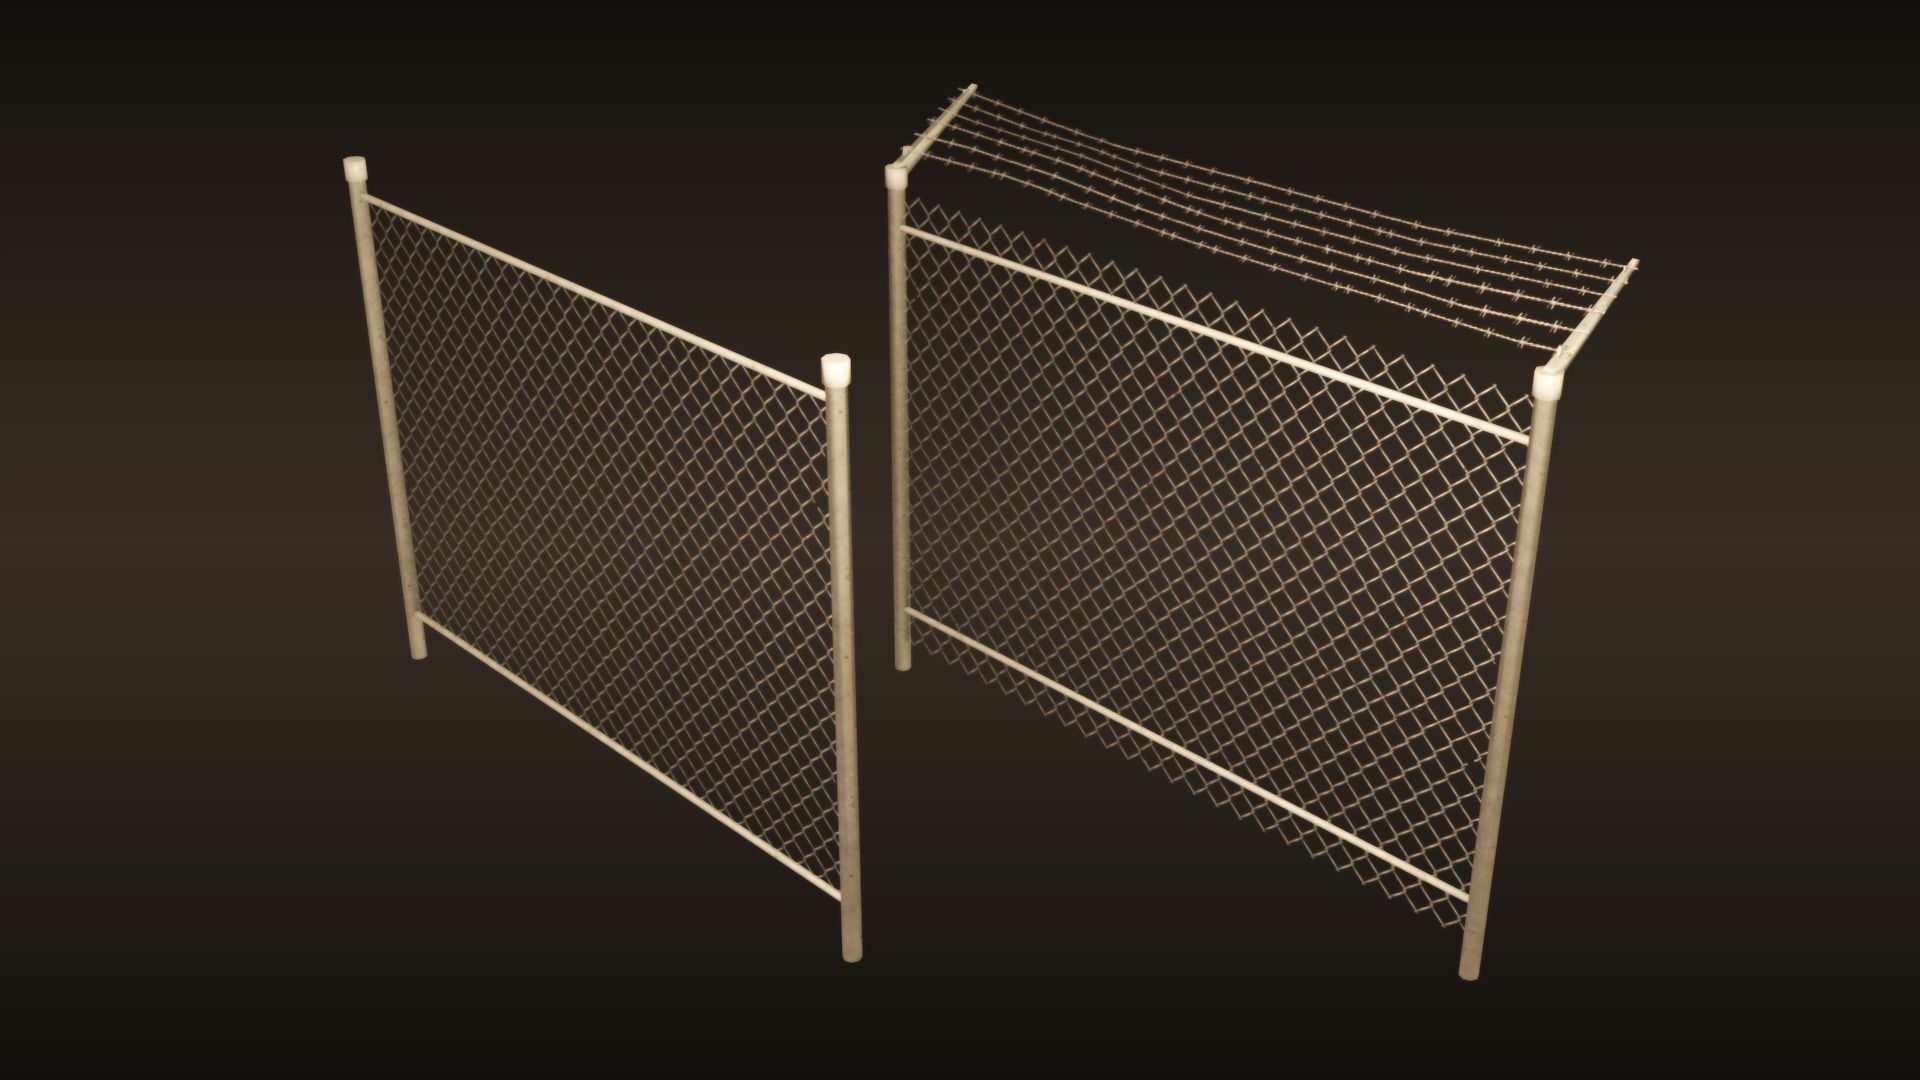 A chain-link fences set